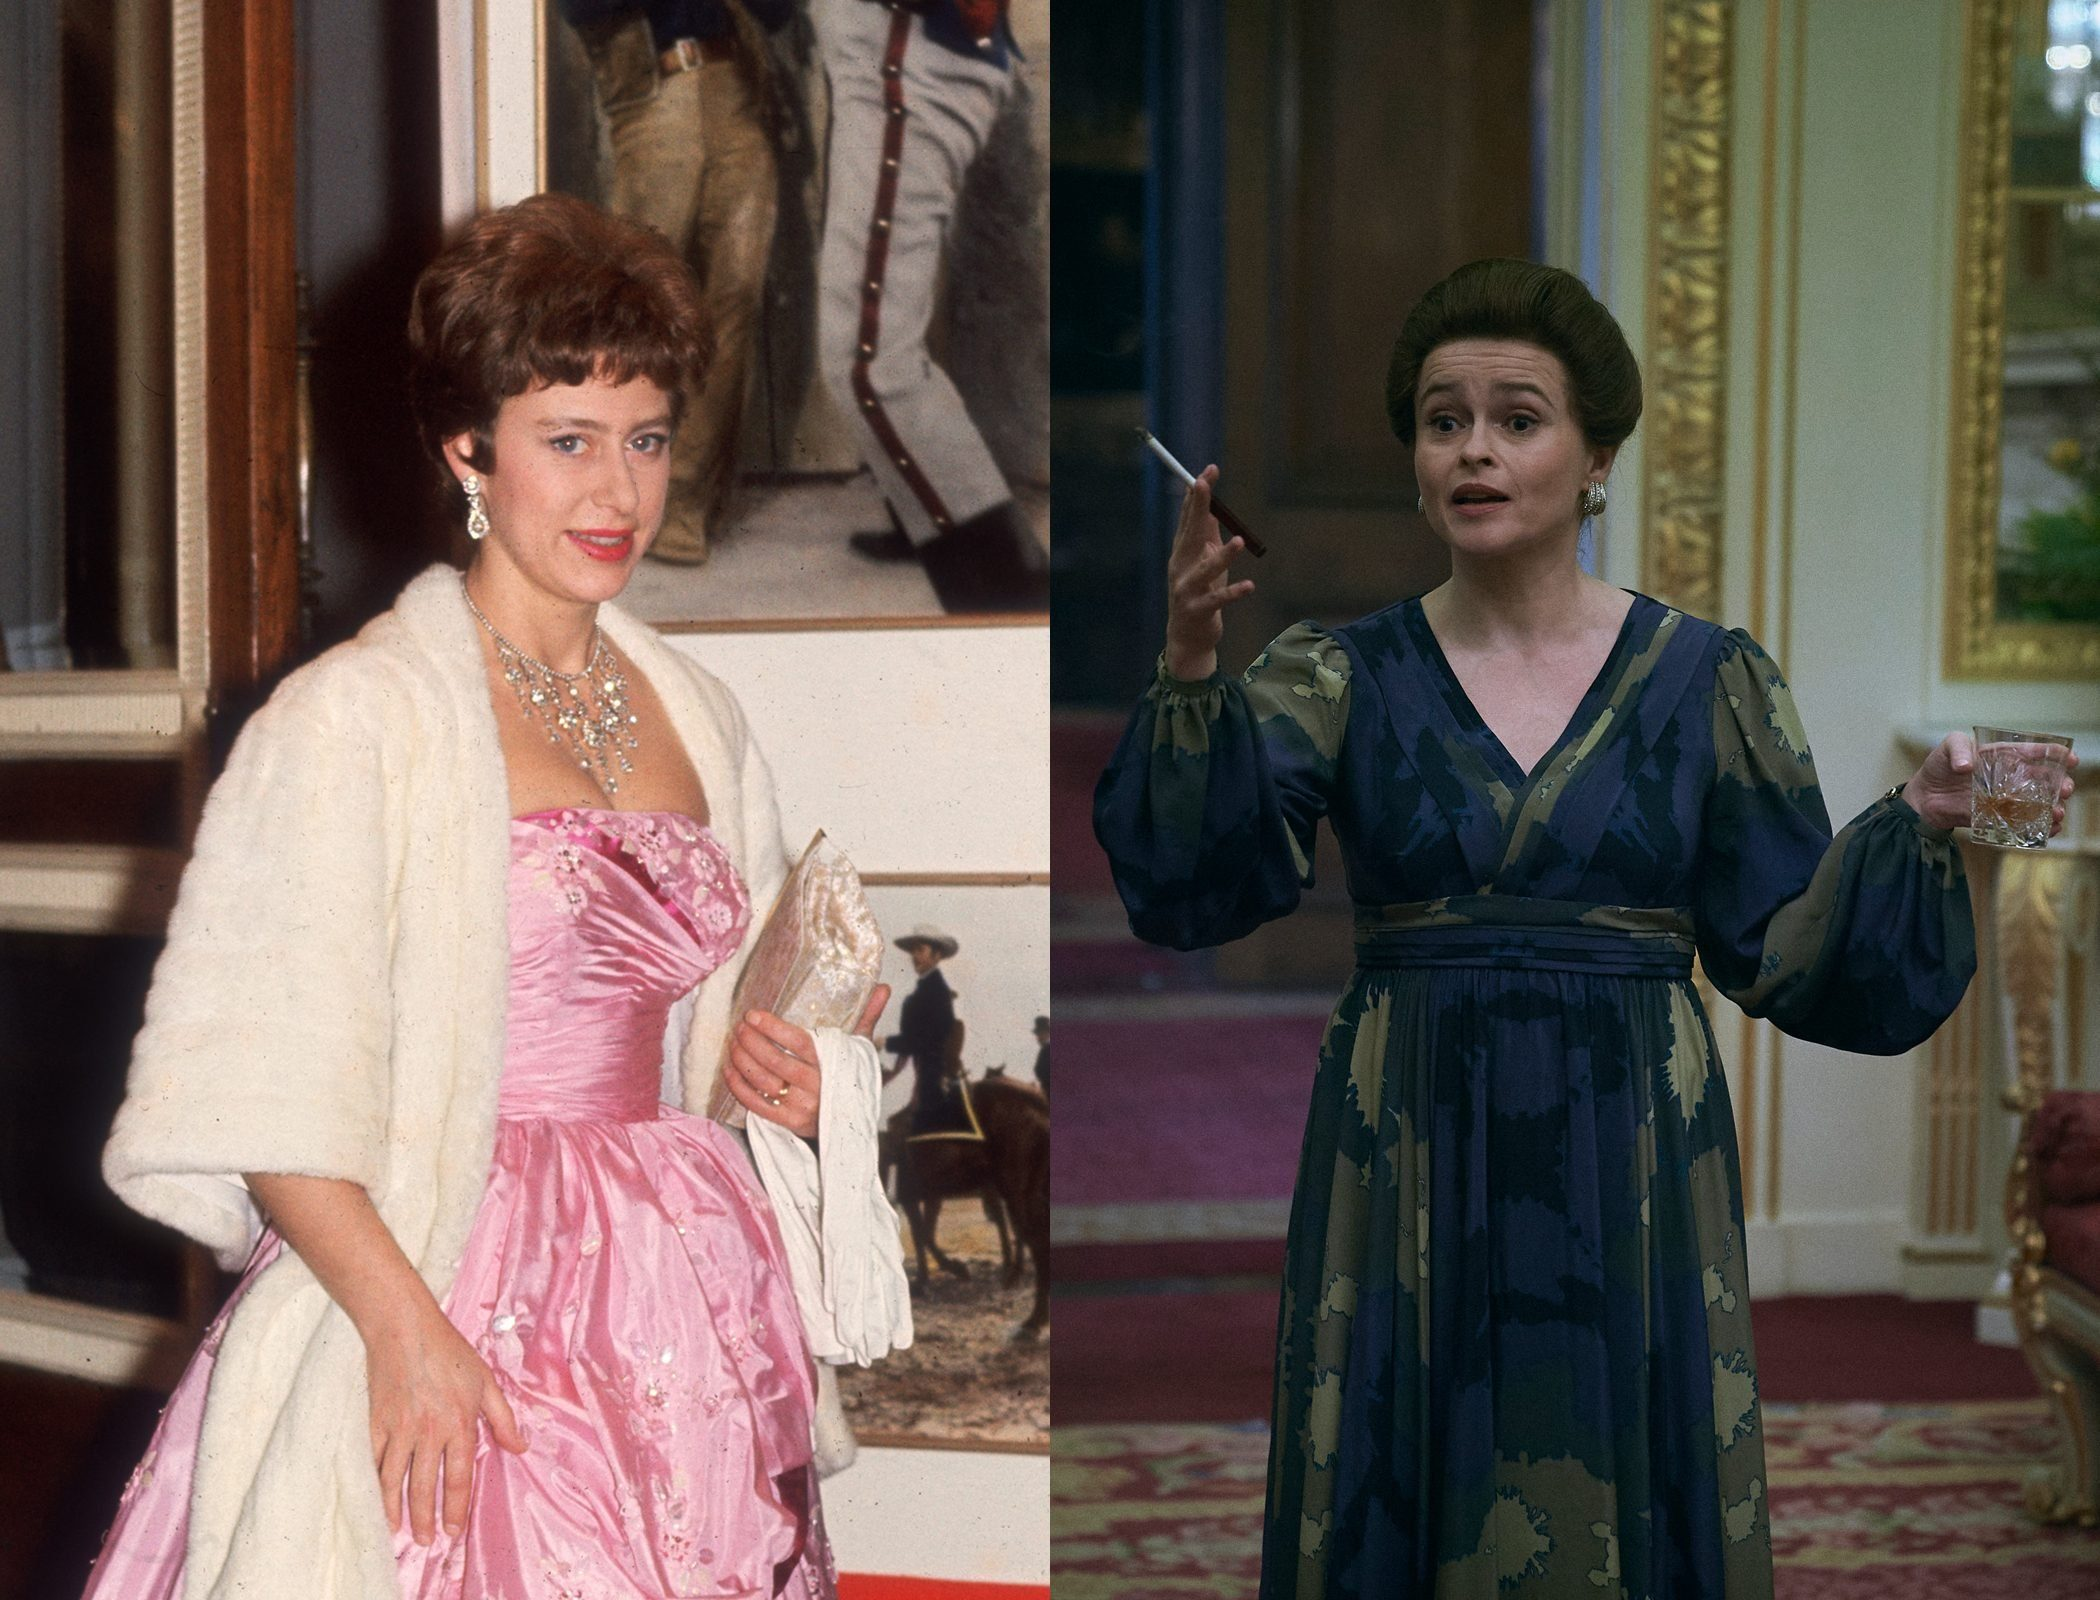 Princess Margaret in middle age, as played by Helena Bonham Carter